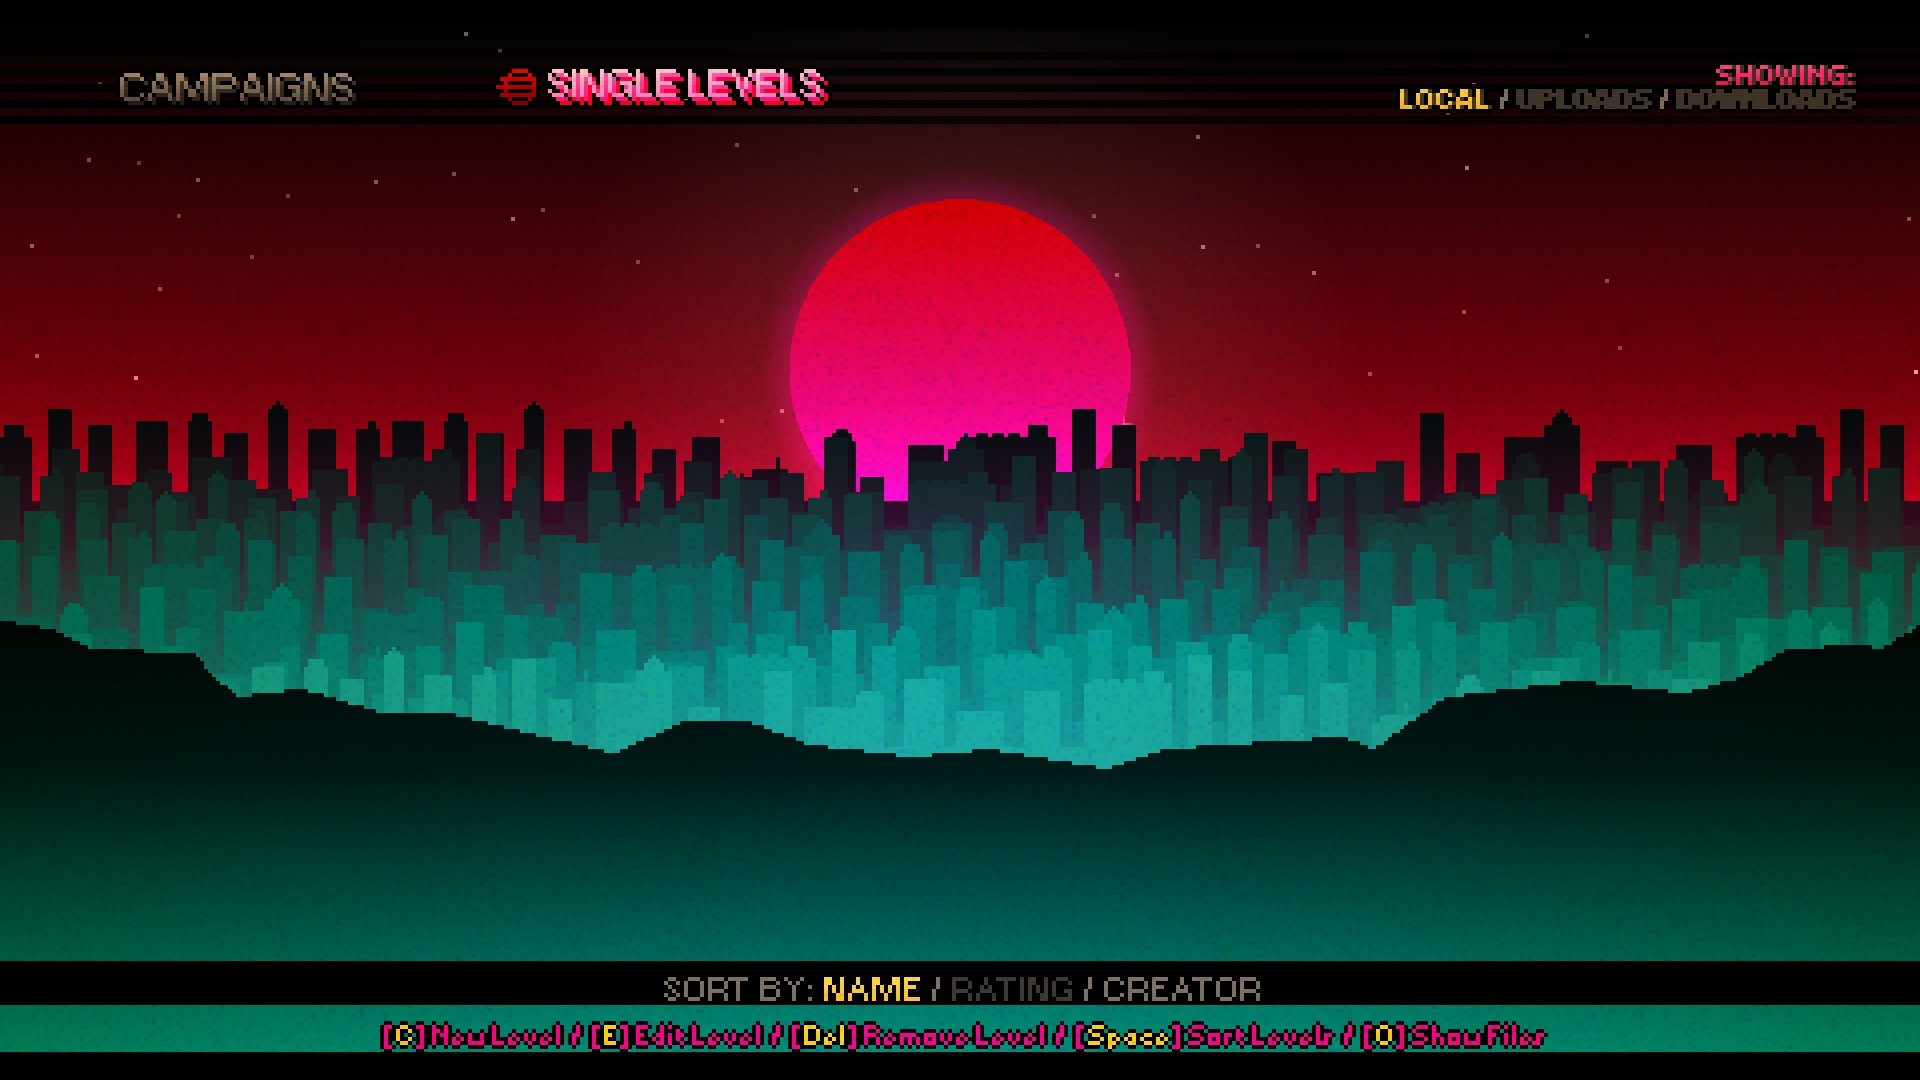 The Starry Sky selection screen of the editor. The blue lit buildings of  the Miami skyline ebb and flow like waves.